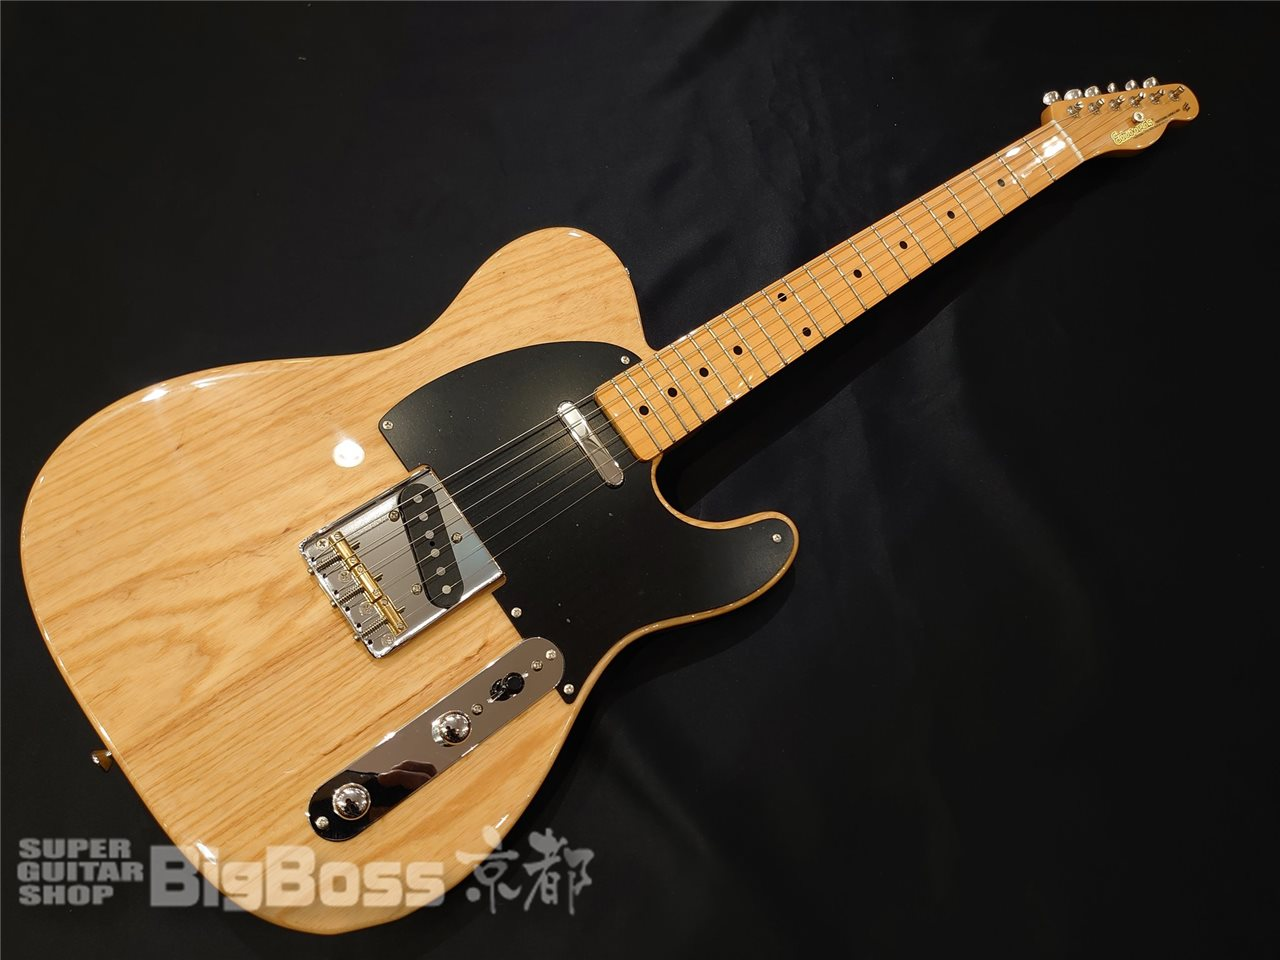 【即納可能】EDWARDS(エドワーズ) E-TE-98ASM / Vintage Natural 京都店